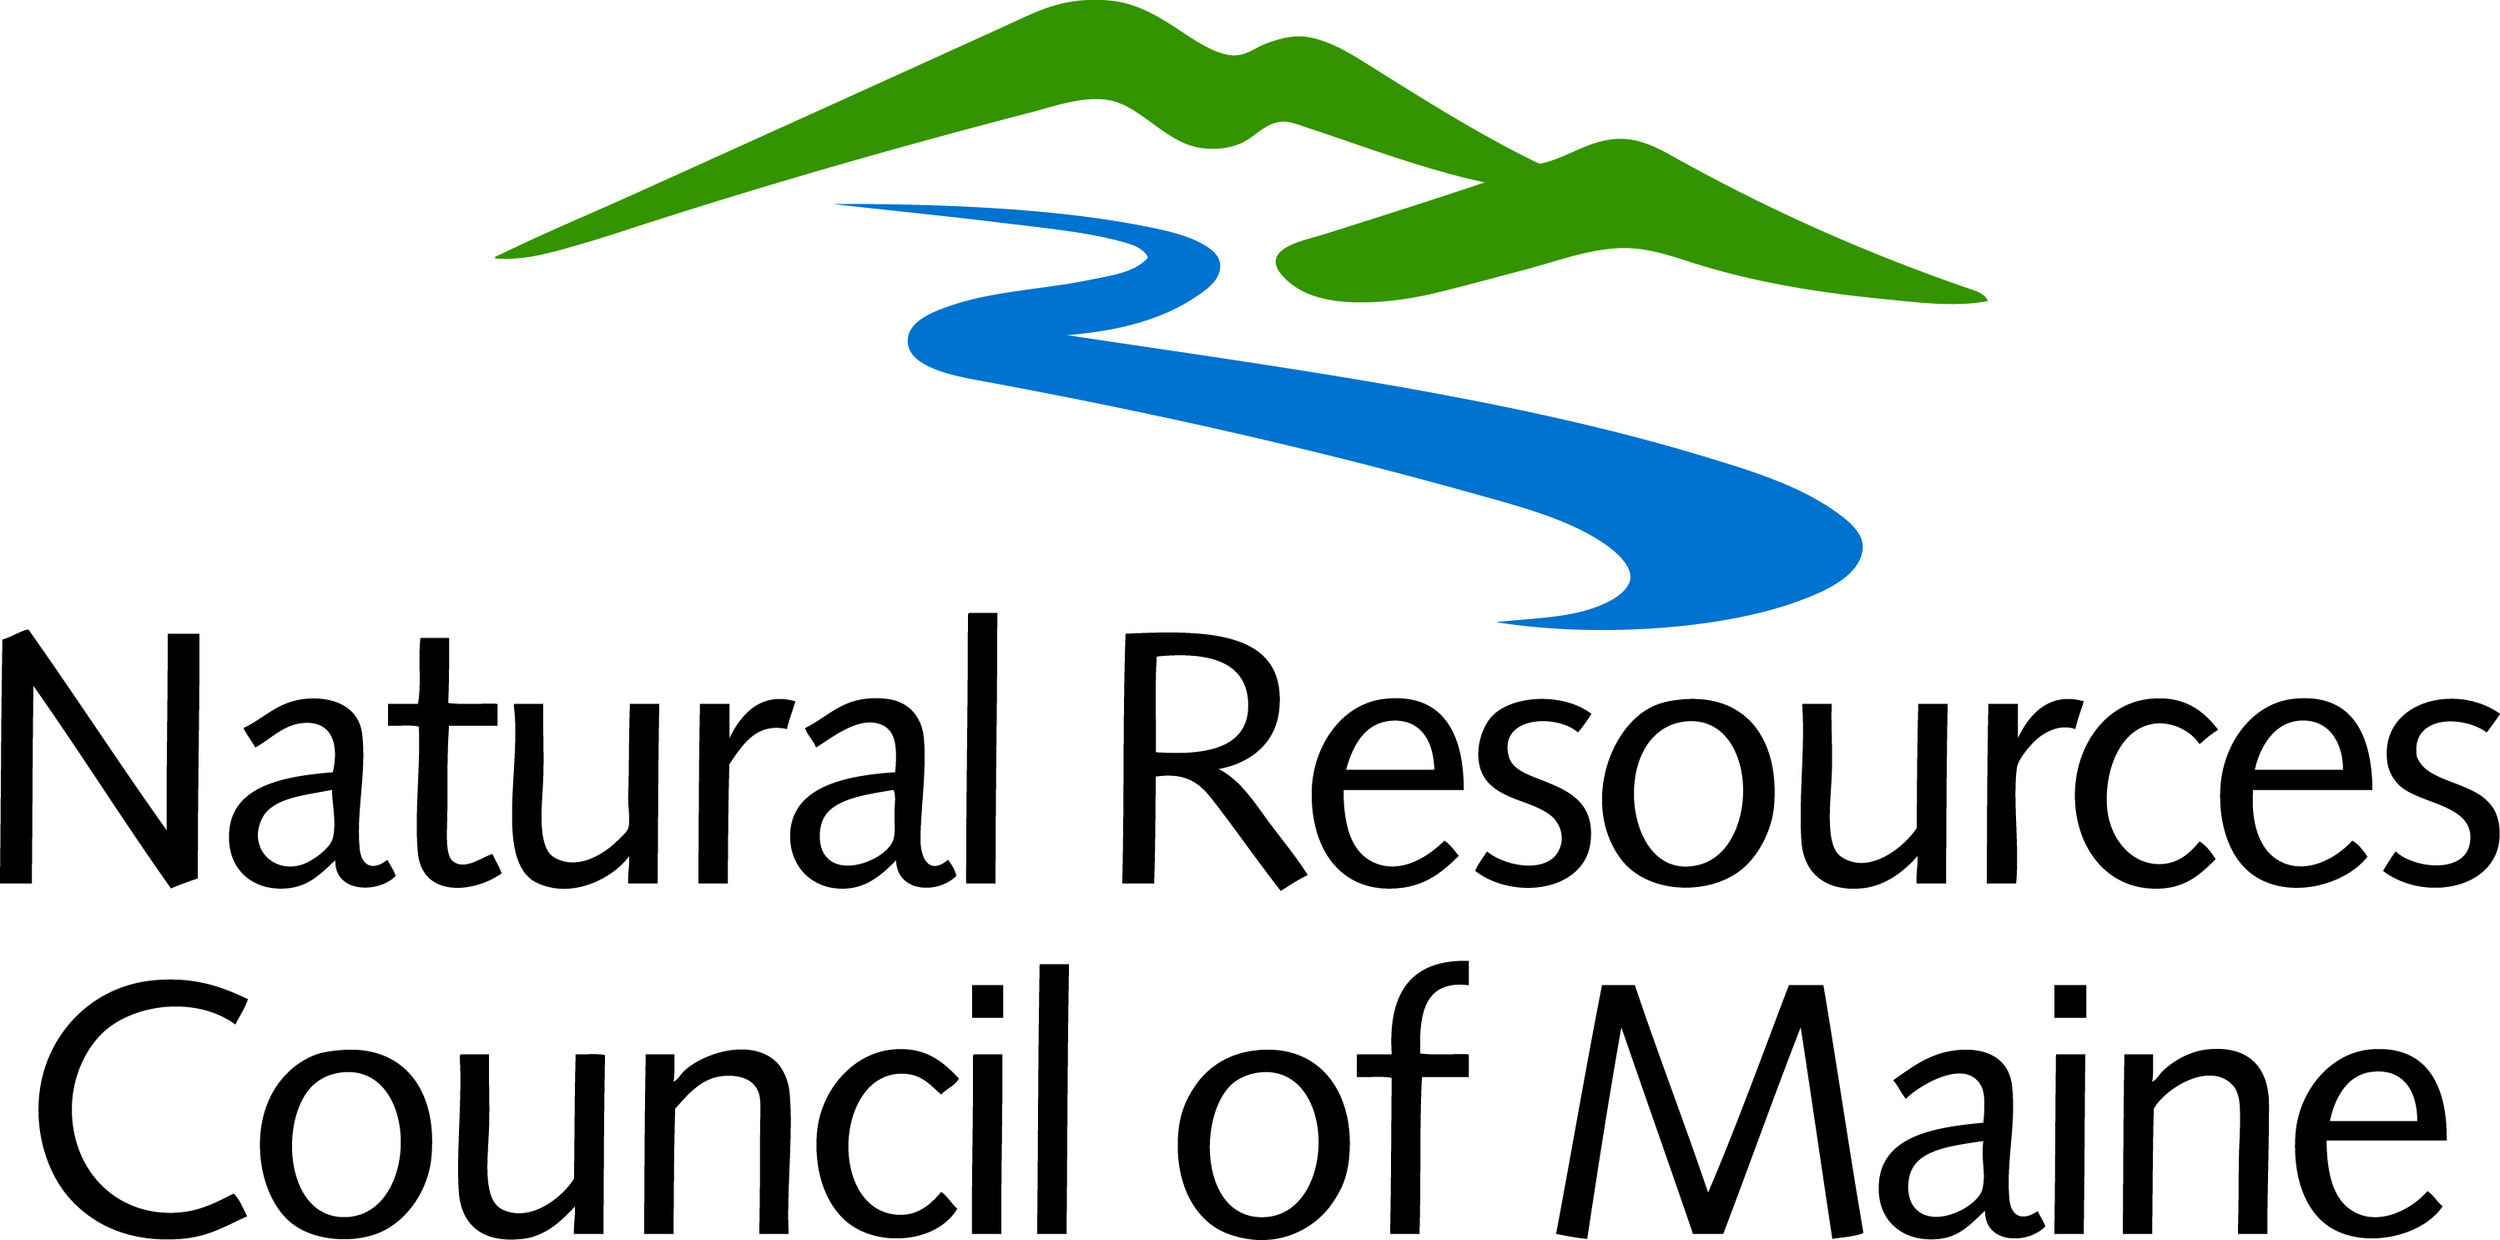 HIGHRES nrcm logo color black text.jpg